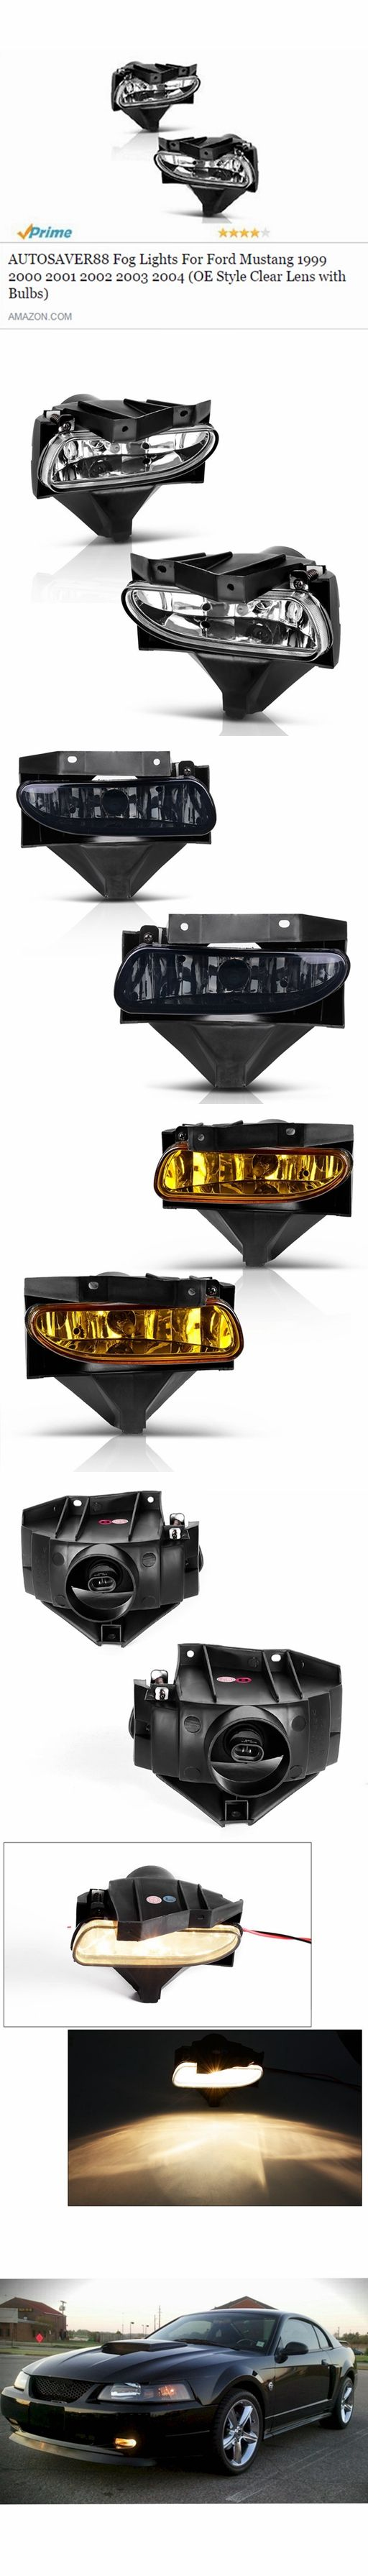 1999-2004 #Ford #Mustang fog lights #OEM style with #bulbs in threee colors (Clear/Smoke/Amber). Link: http://a.co/aVOBQX8 #FordGT #Cobra #MustangGT #foglights #Amazon #Prime